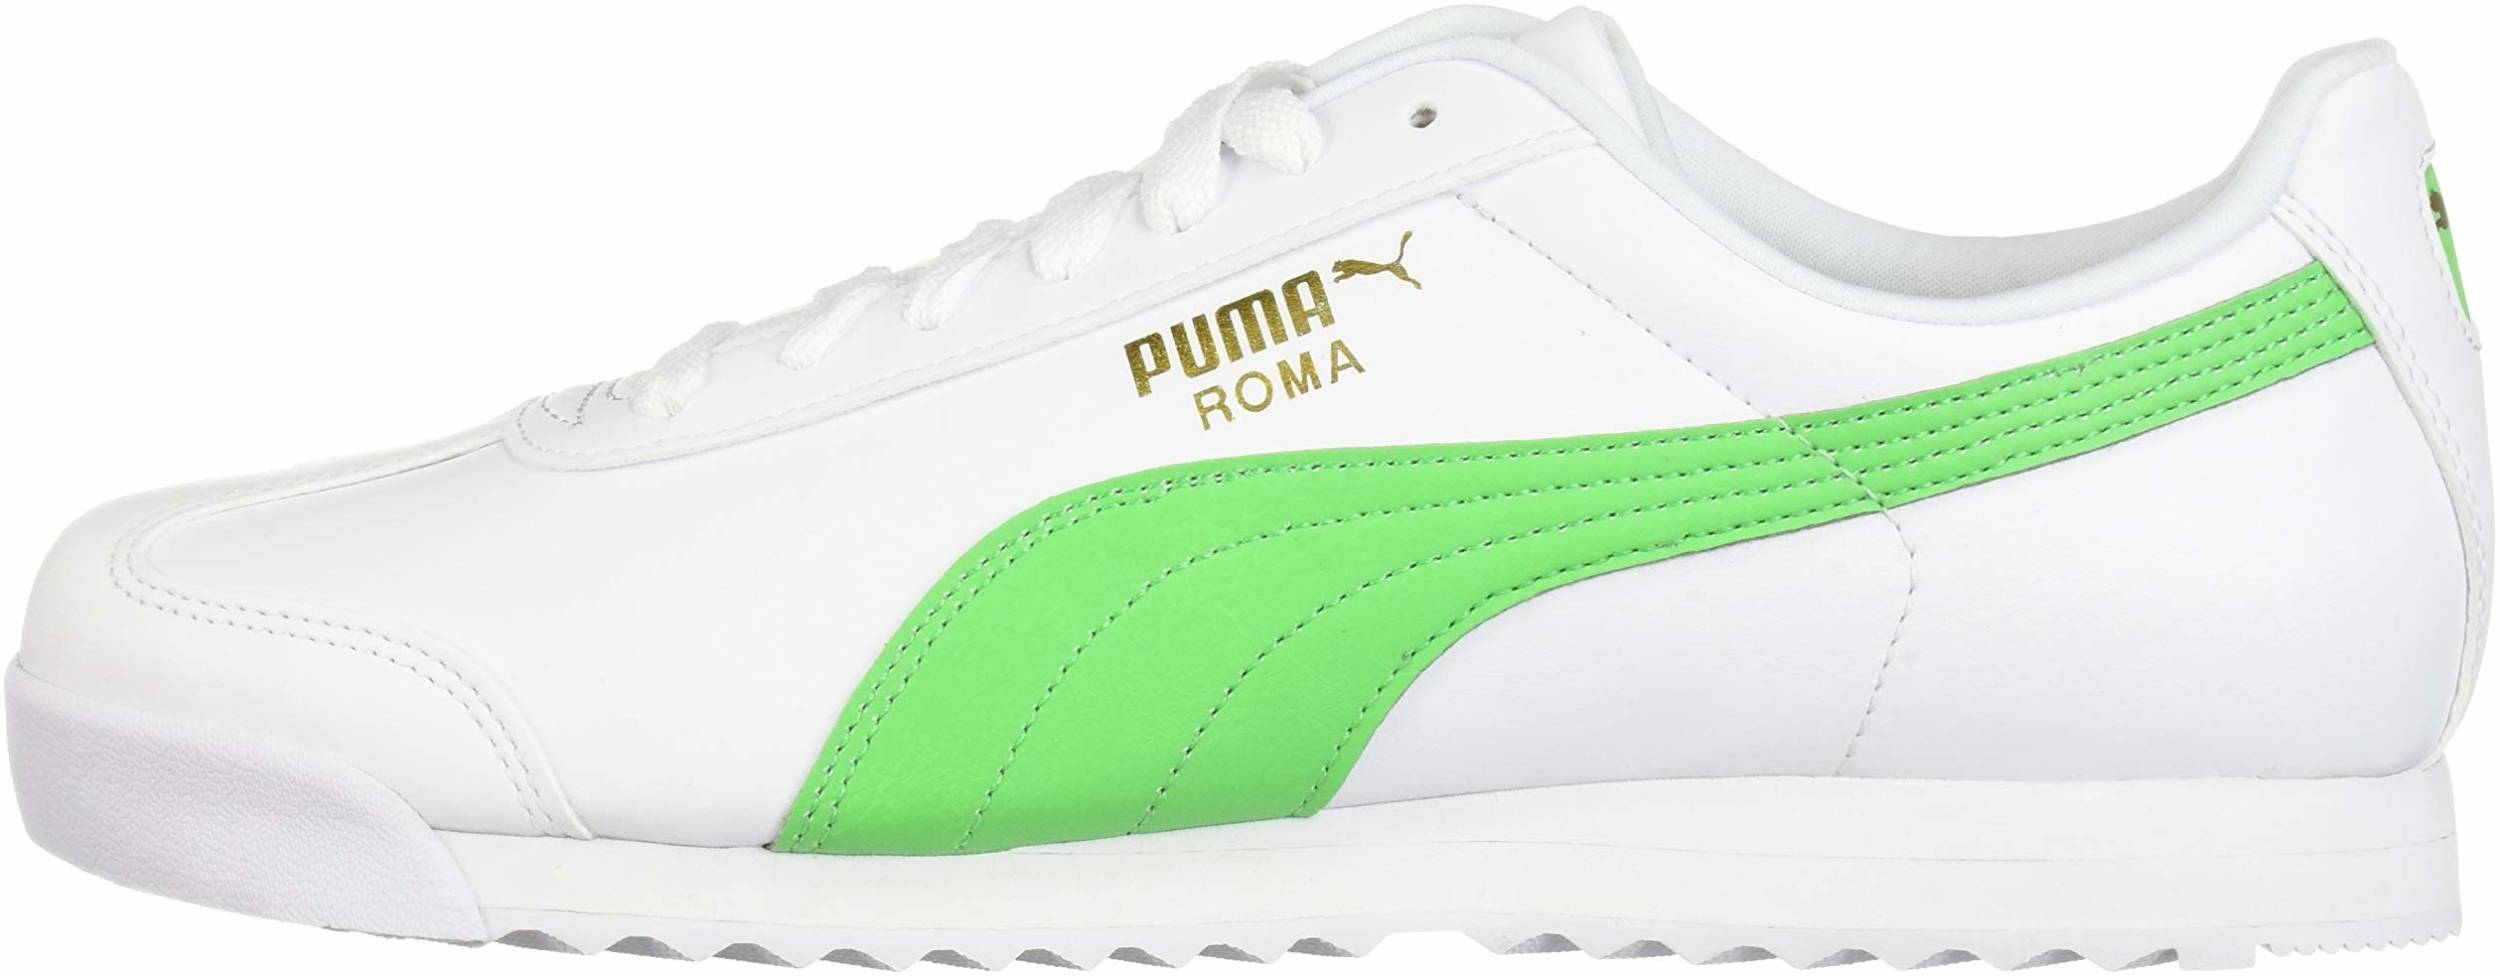 Only $41 + Review of Puma Roma Basic +